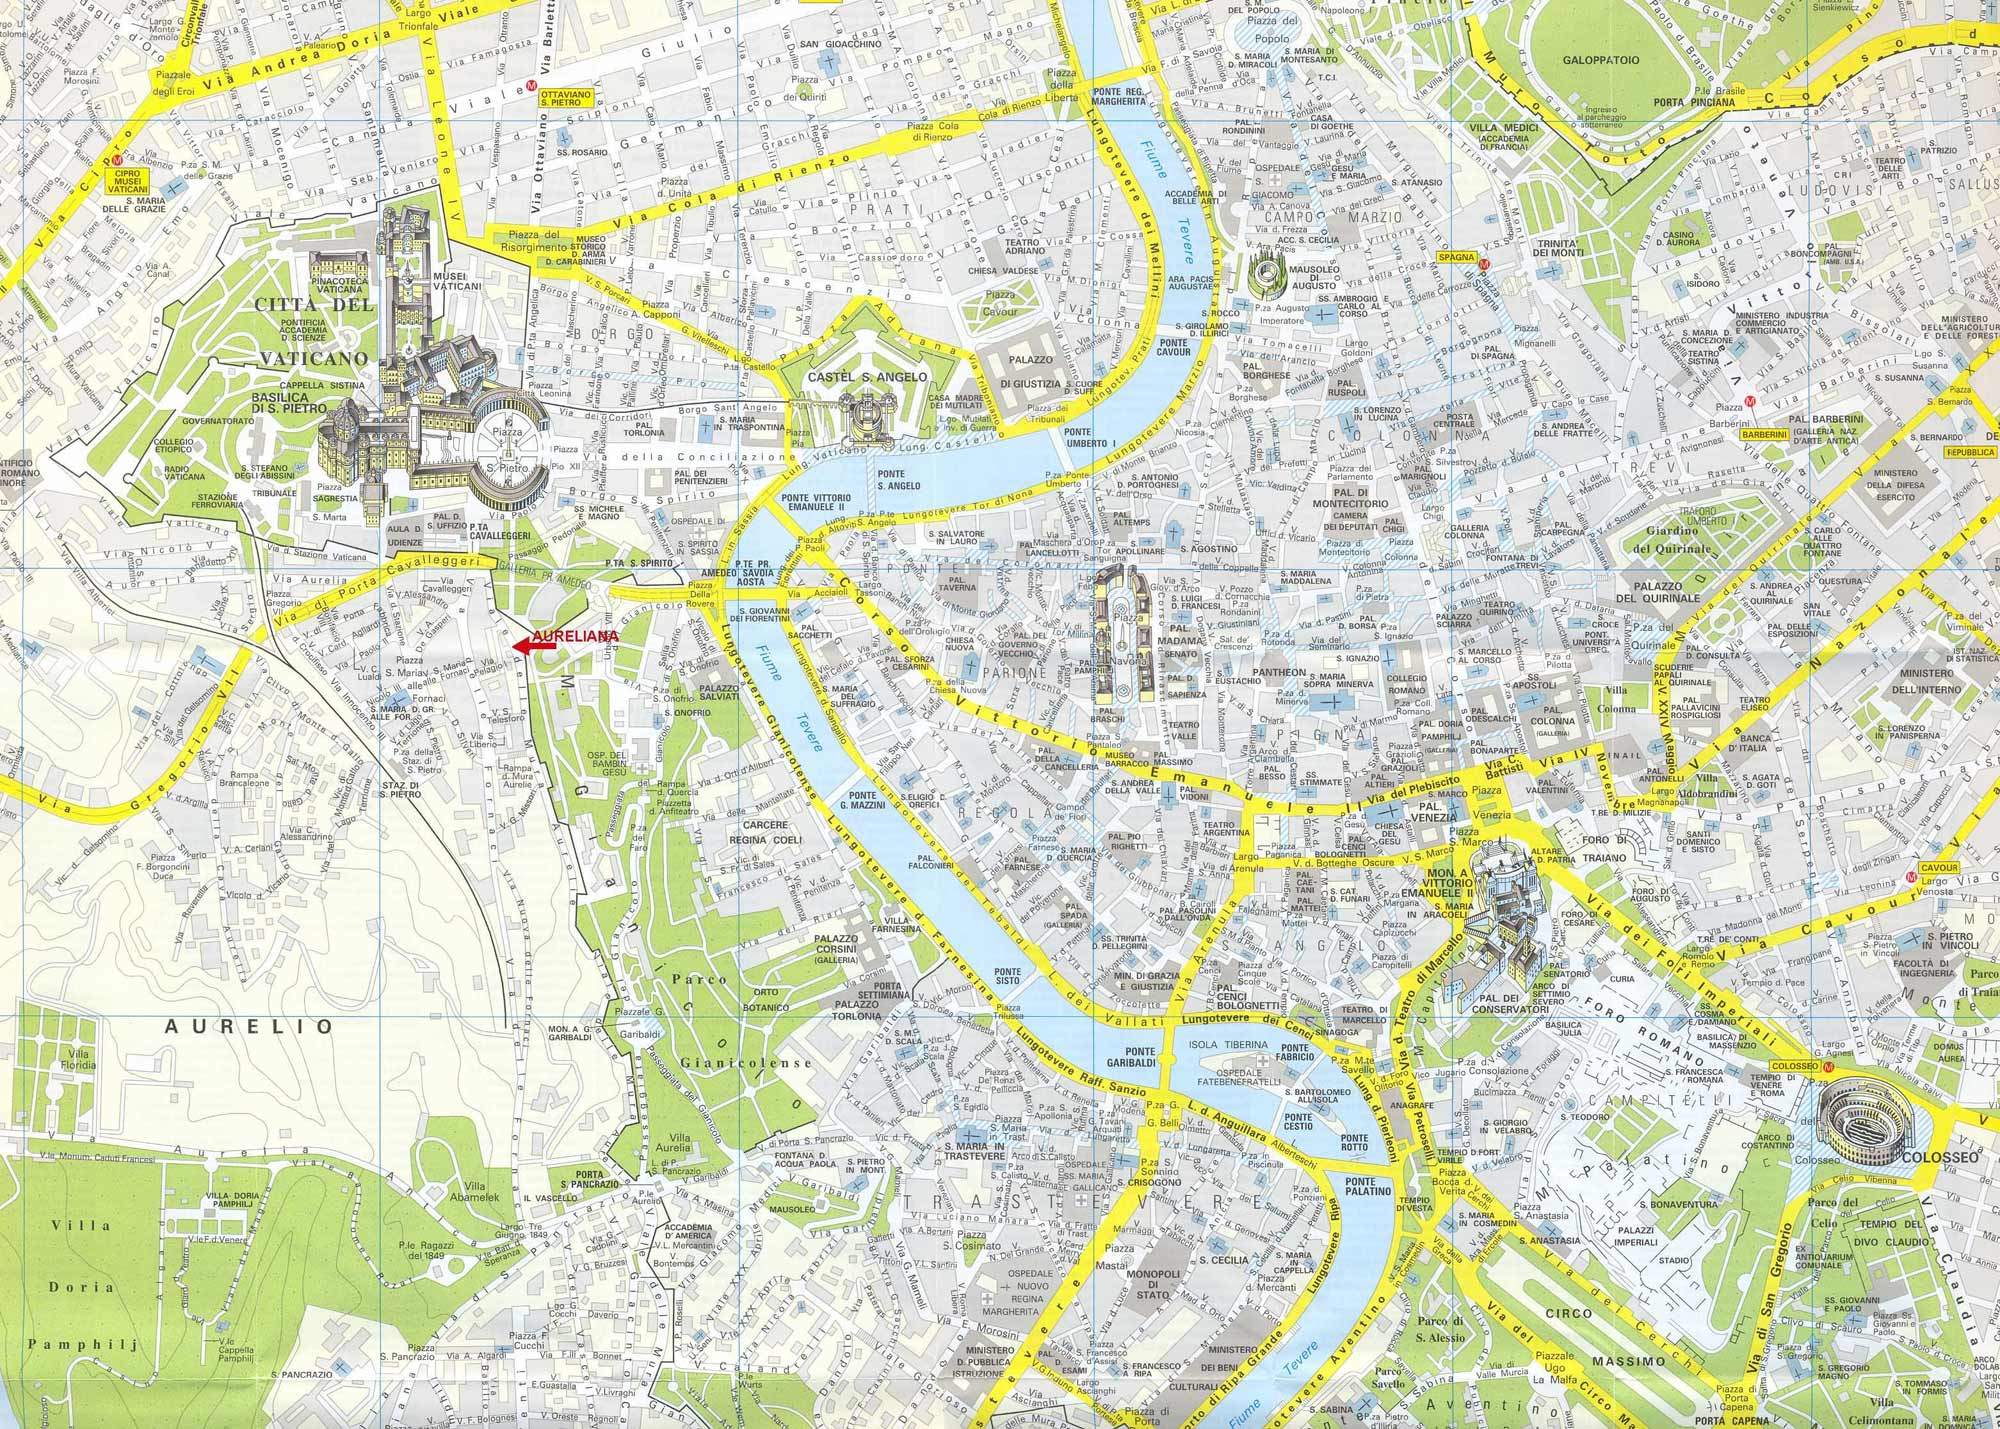 Map Of Rome City Rome City Map 3 • Mapsof.net Map Of Rome City